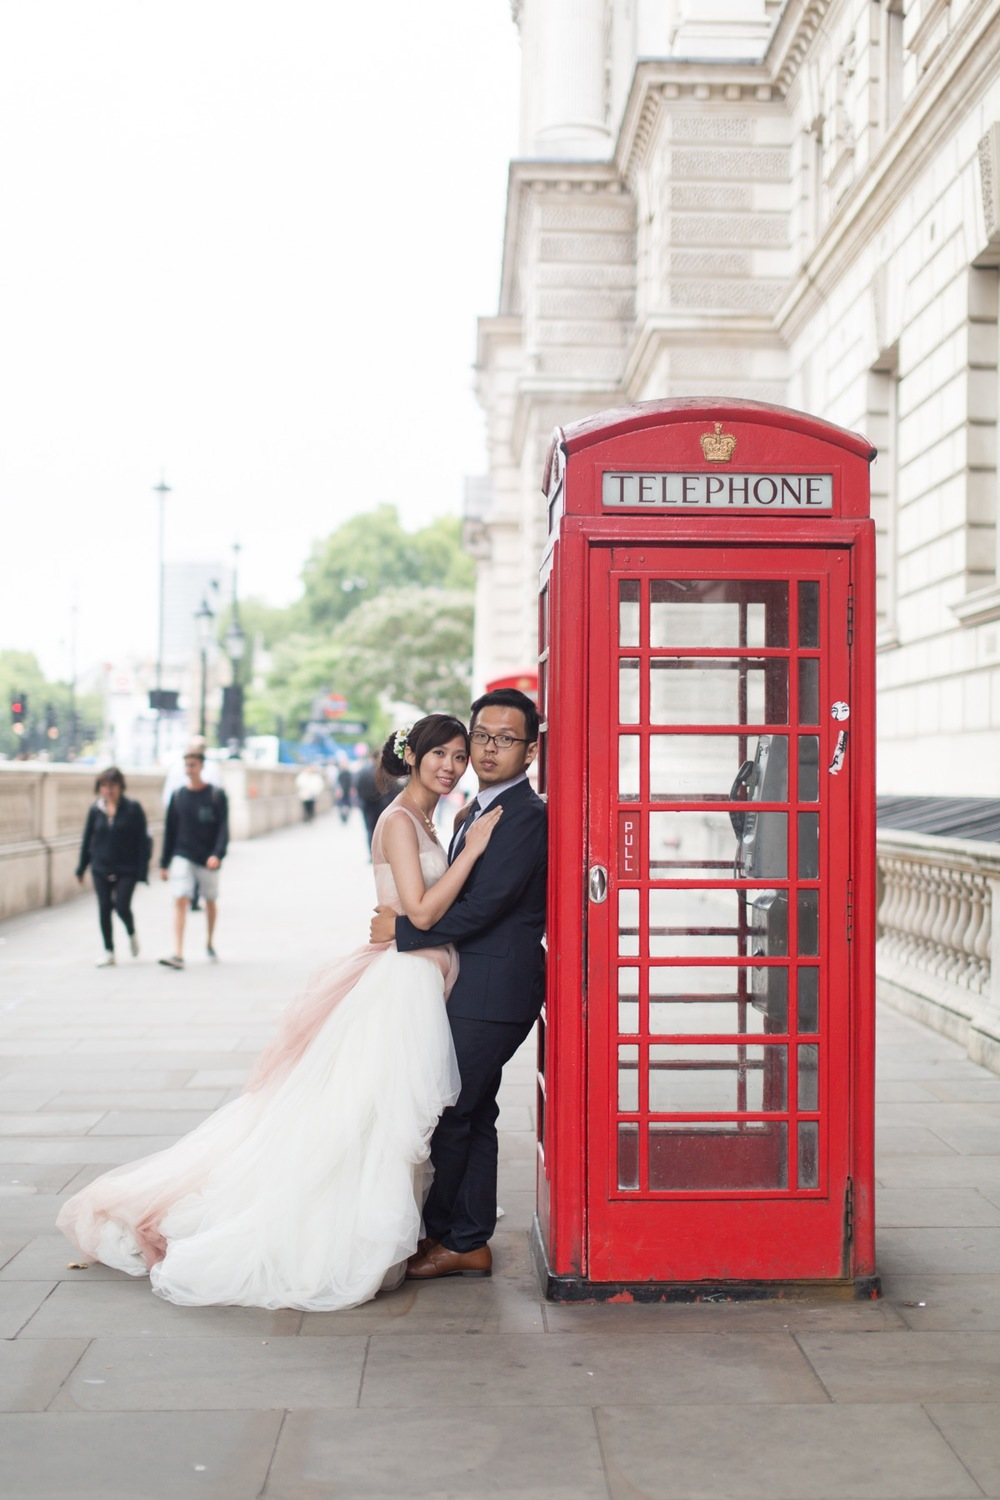 pre-wedding photography in London flytographer